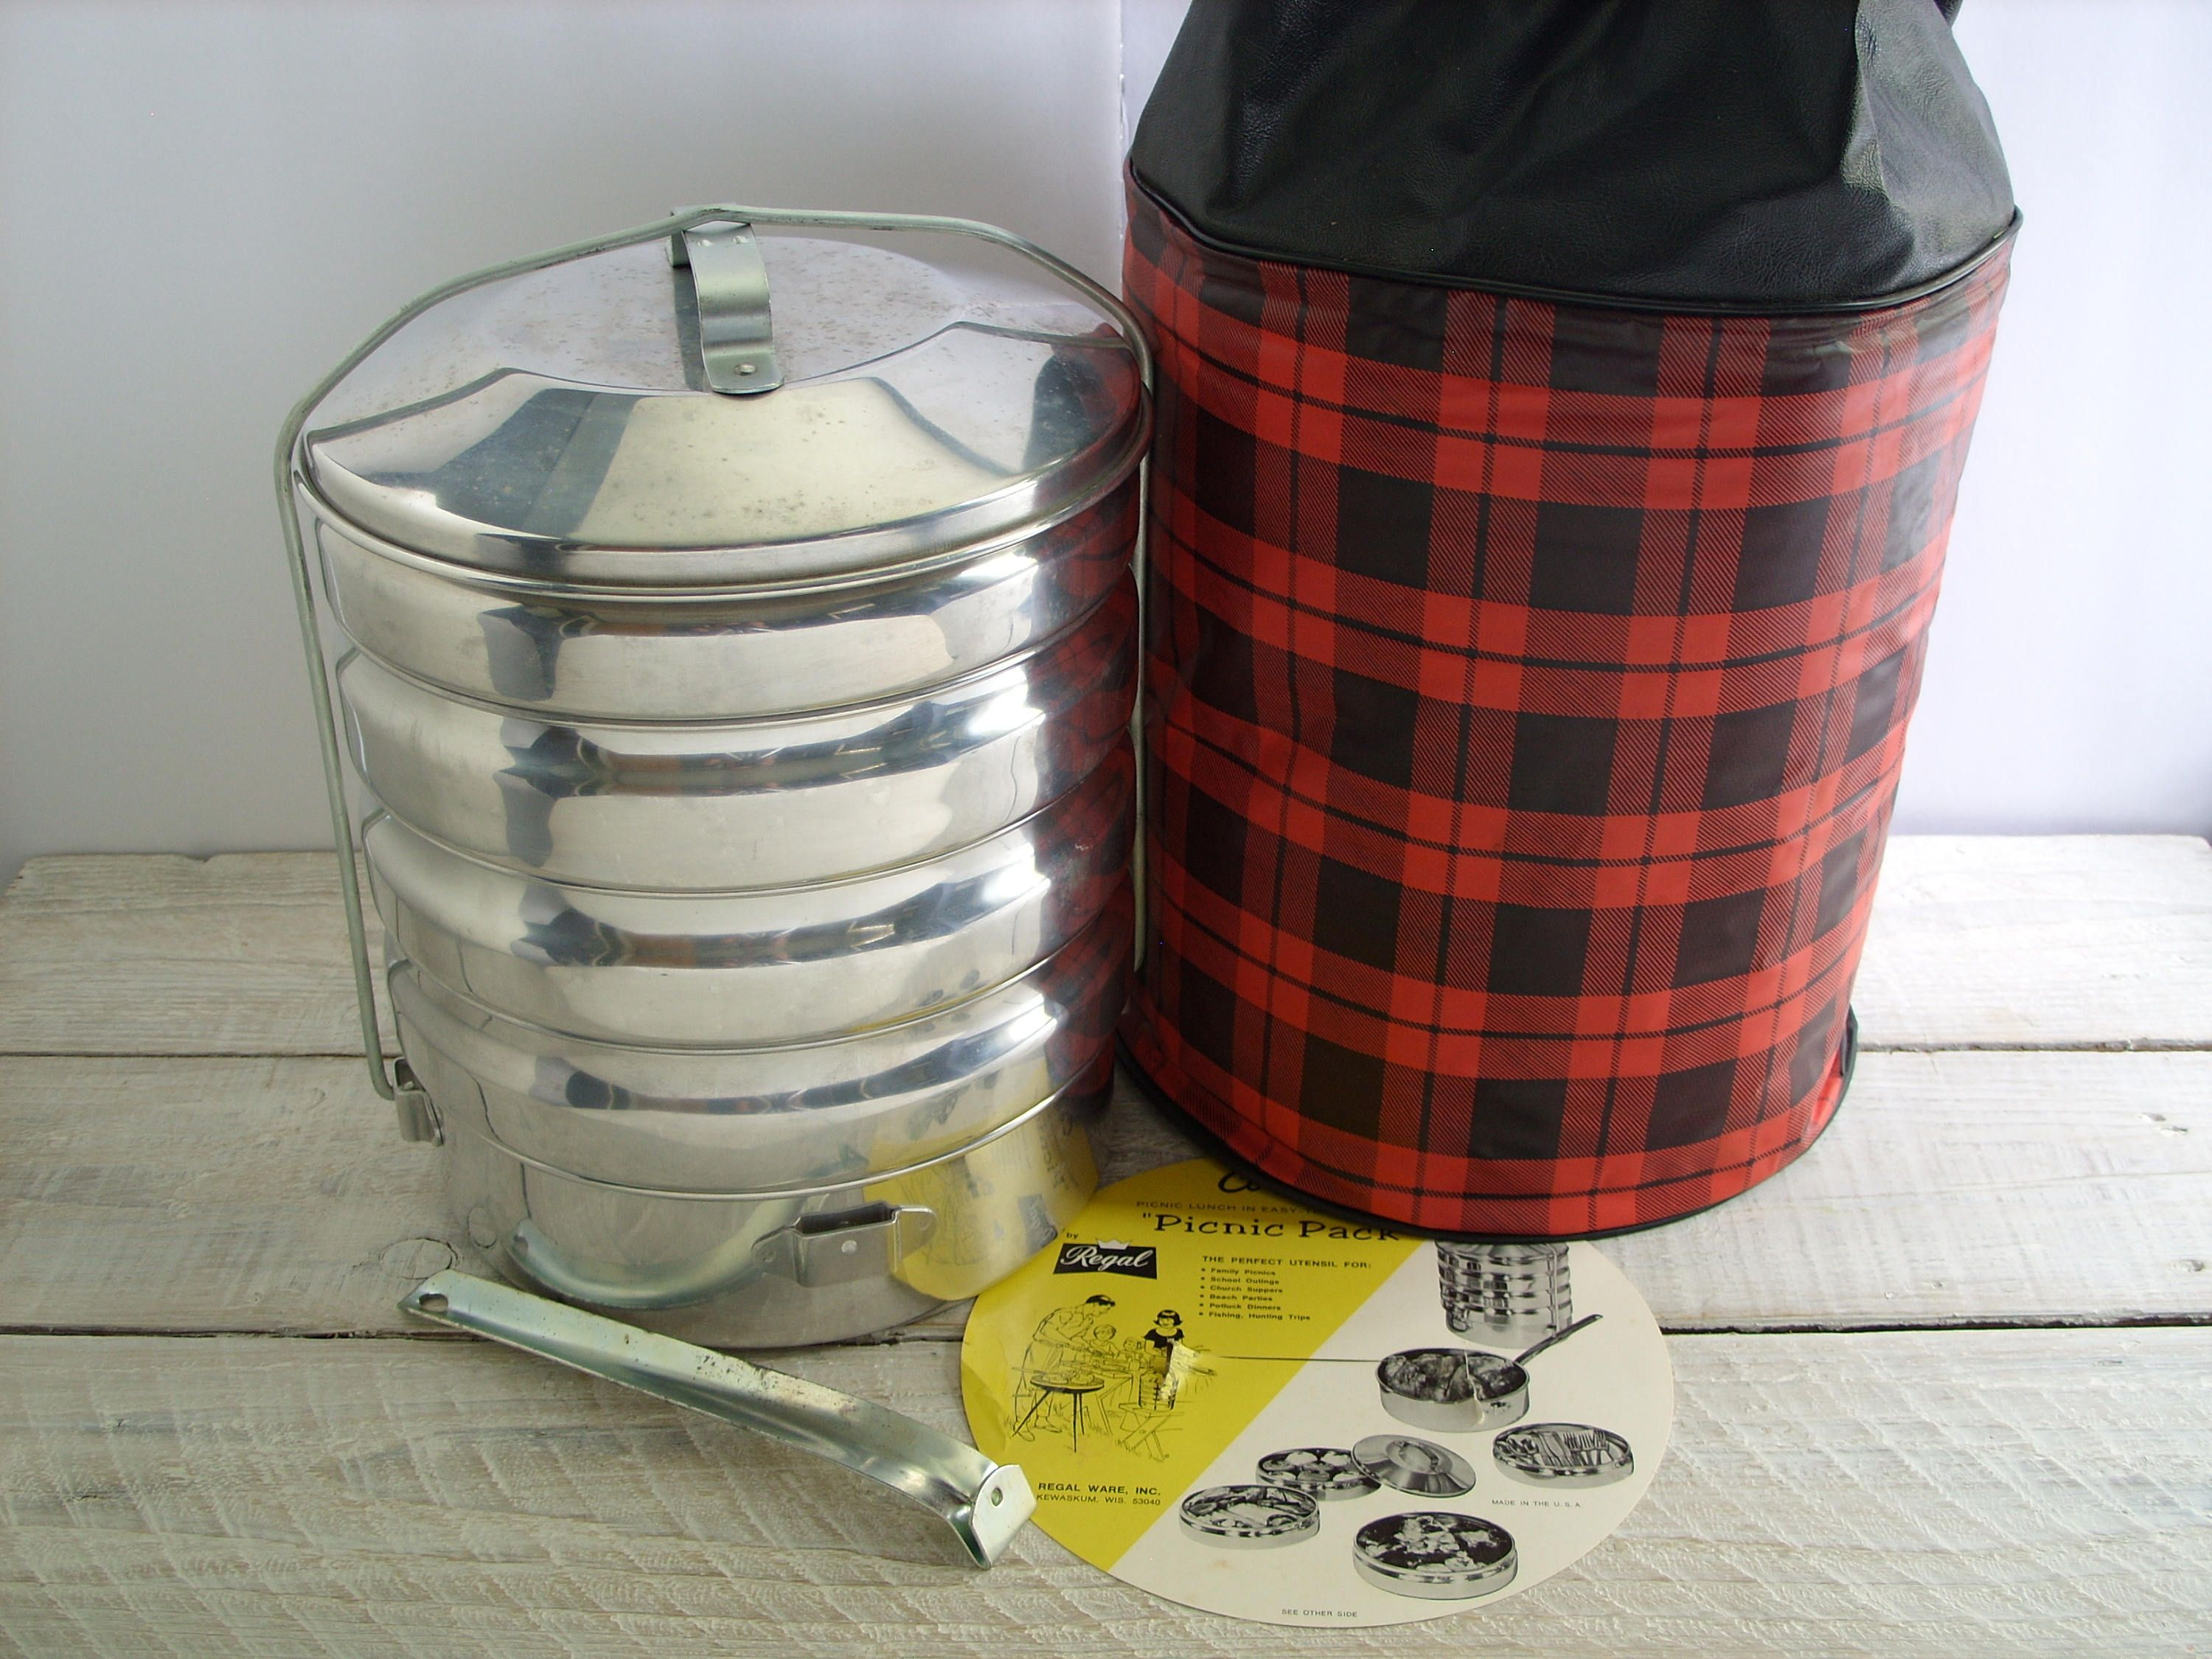 Vintage Regal Ware Picnic Pack Food Carrier Insulated Plastic Plaid Bag Metal Picnic Camping Travel Cooler Warmer Covered Cooking Pan Picnic Packing Food Carrier Picnic Bag